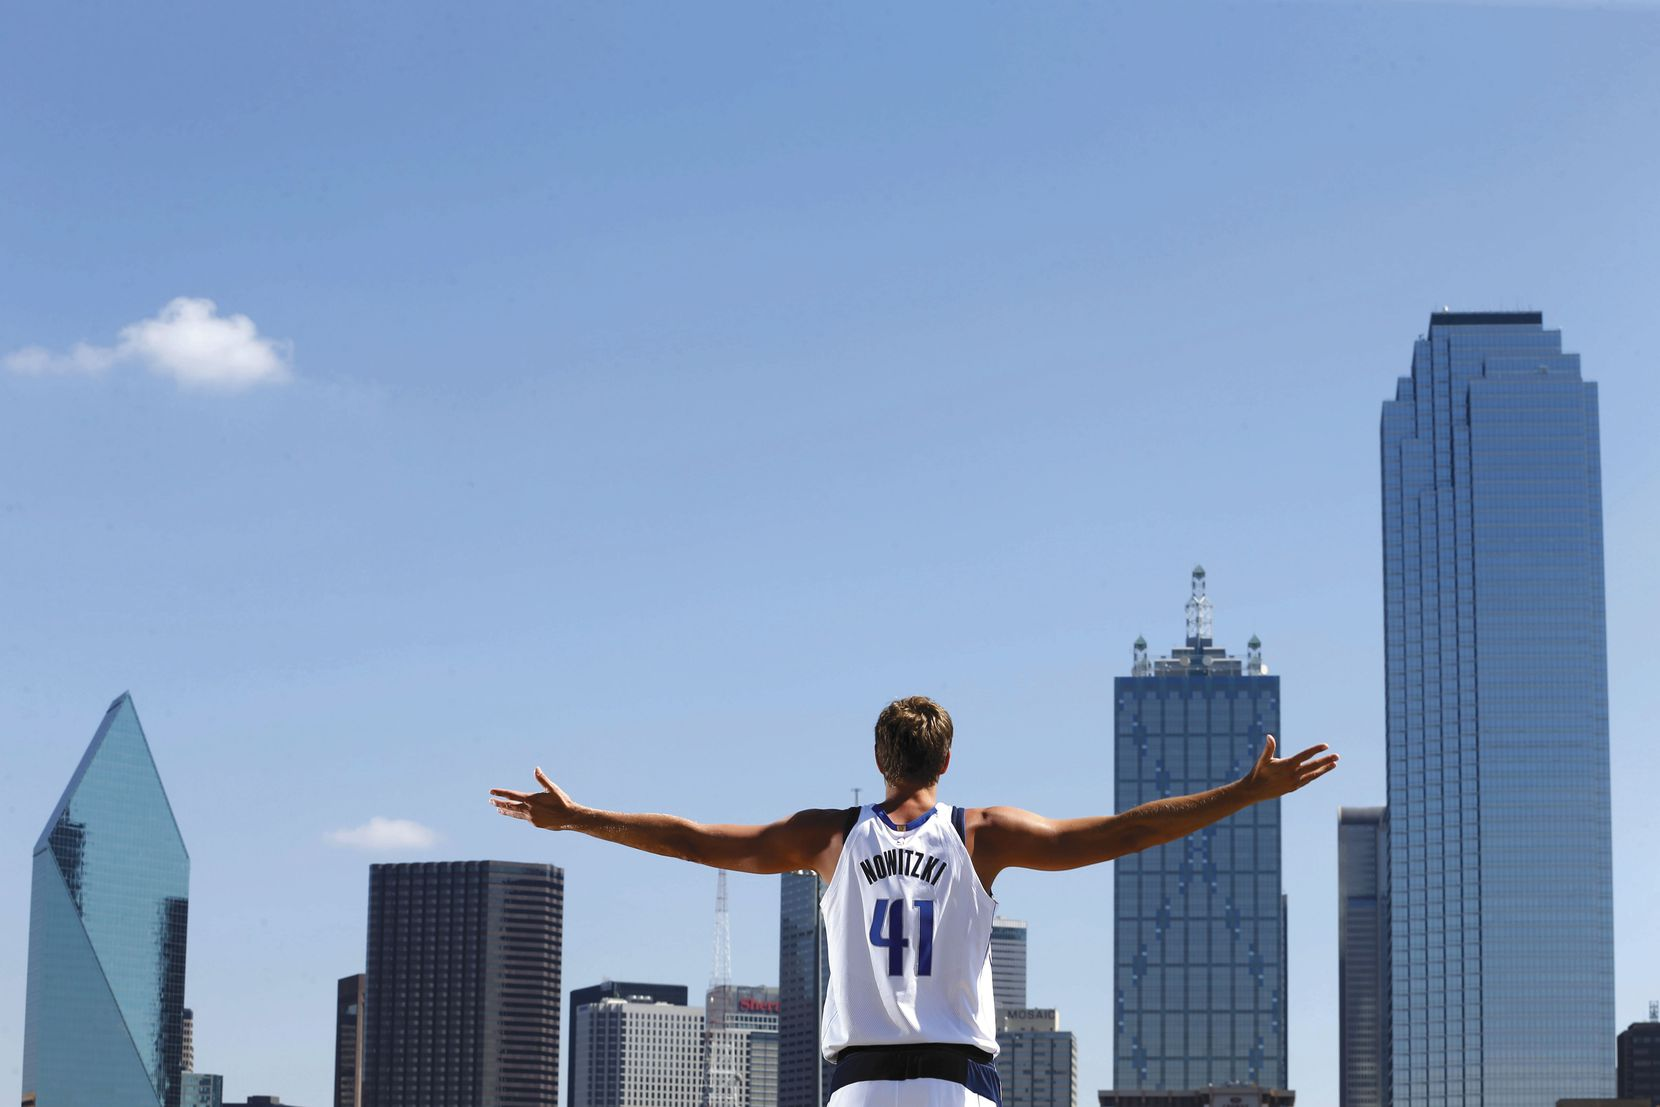 Dallas Mavericks forward Dirk Nowitzki may have been born in Germany, but Dallas is his town. He's started his 20th season here.